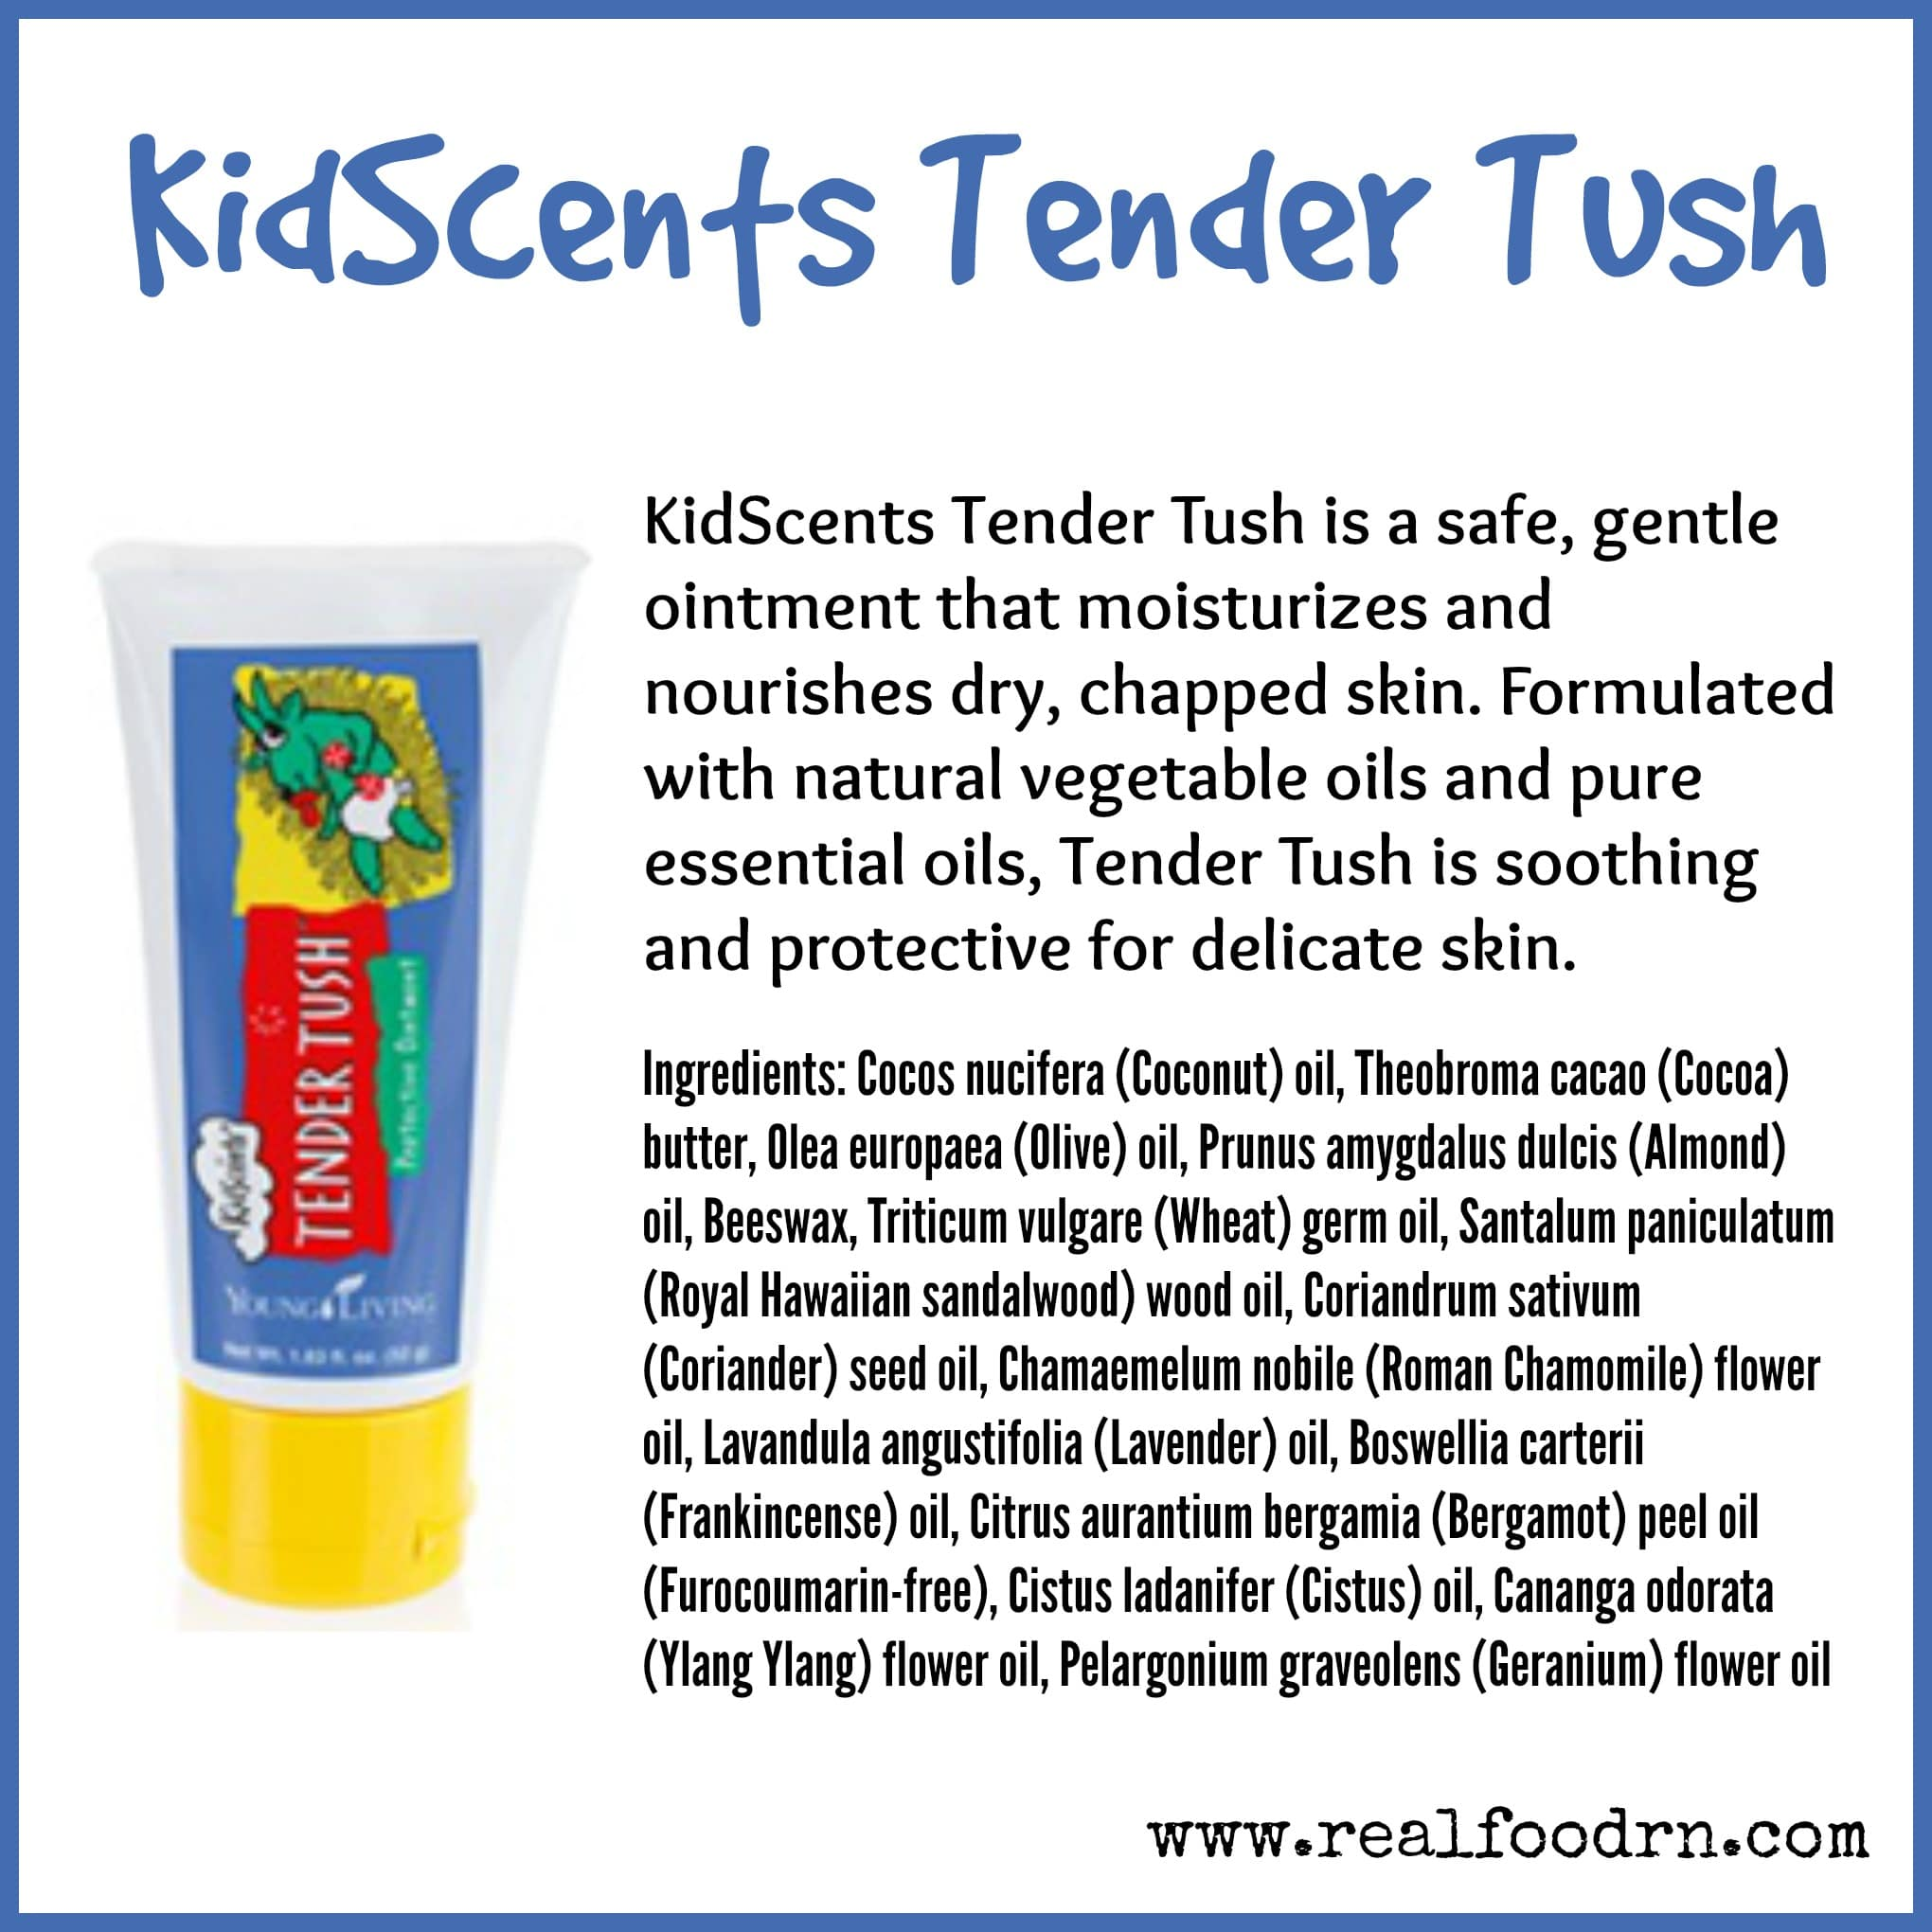 KidScents Tender Tush